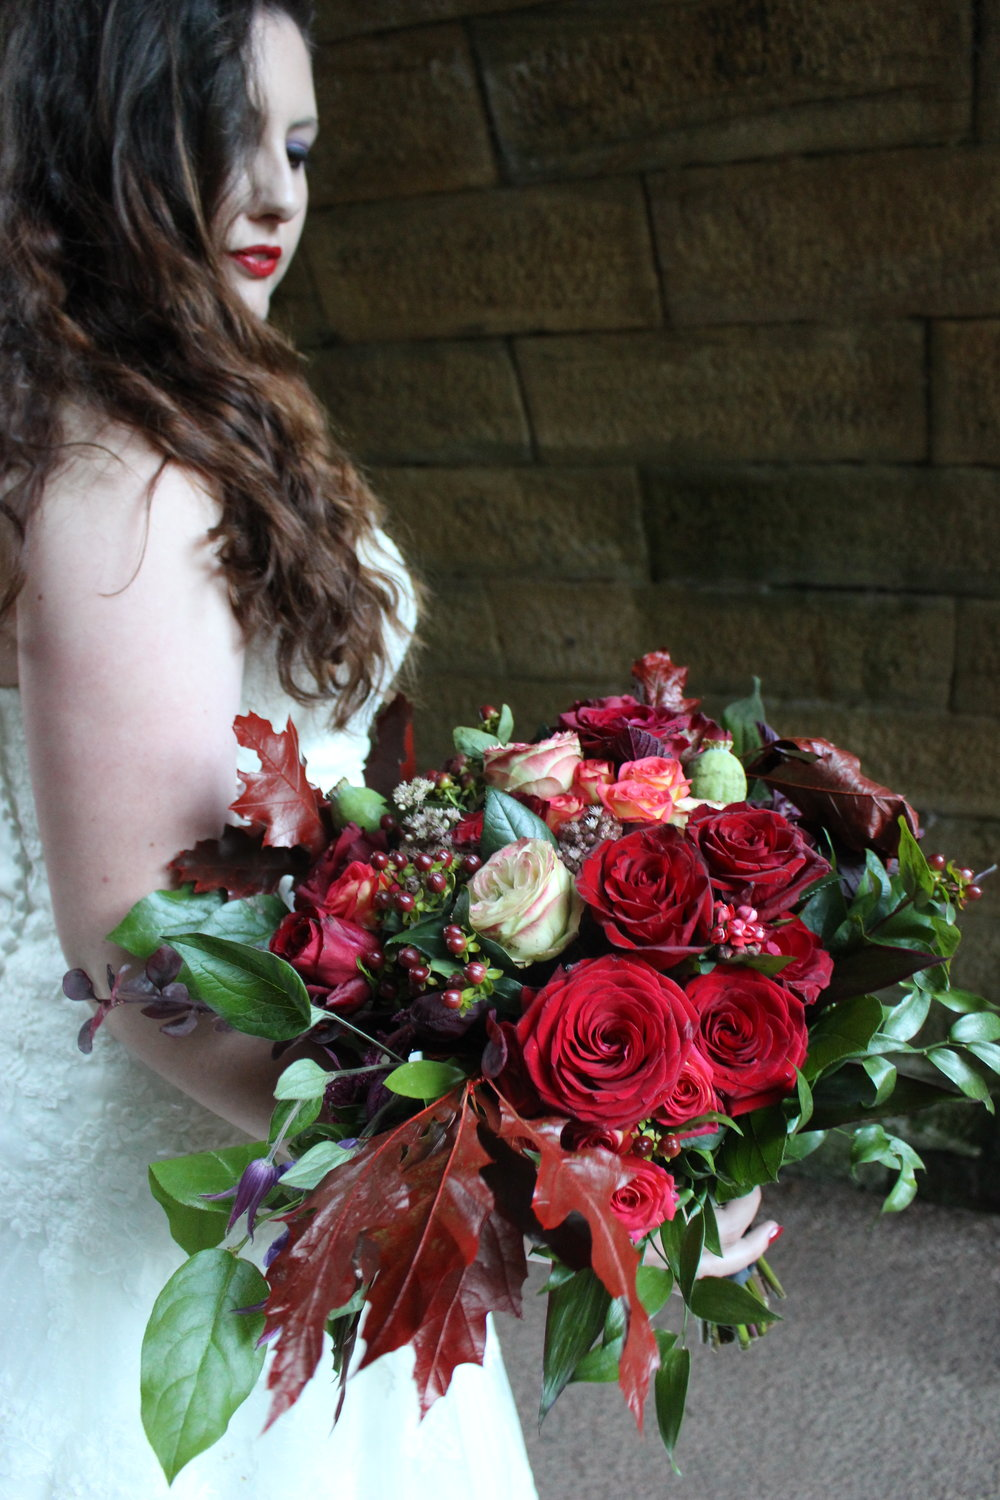 Jesmond dene really suited this bride's look for the day